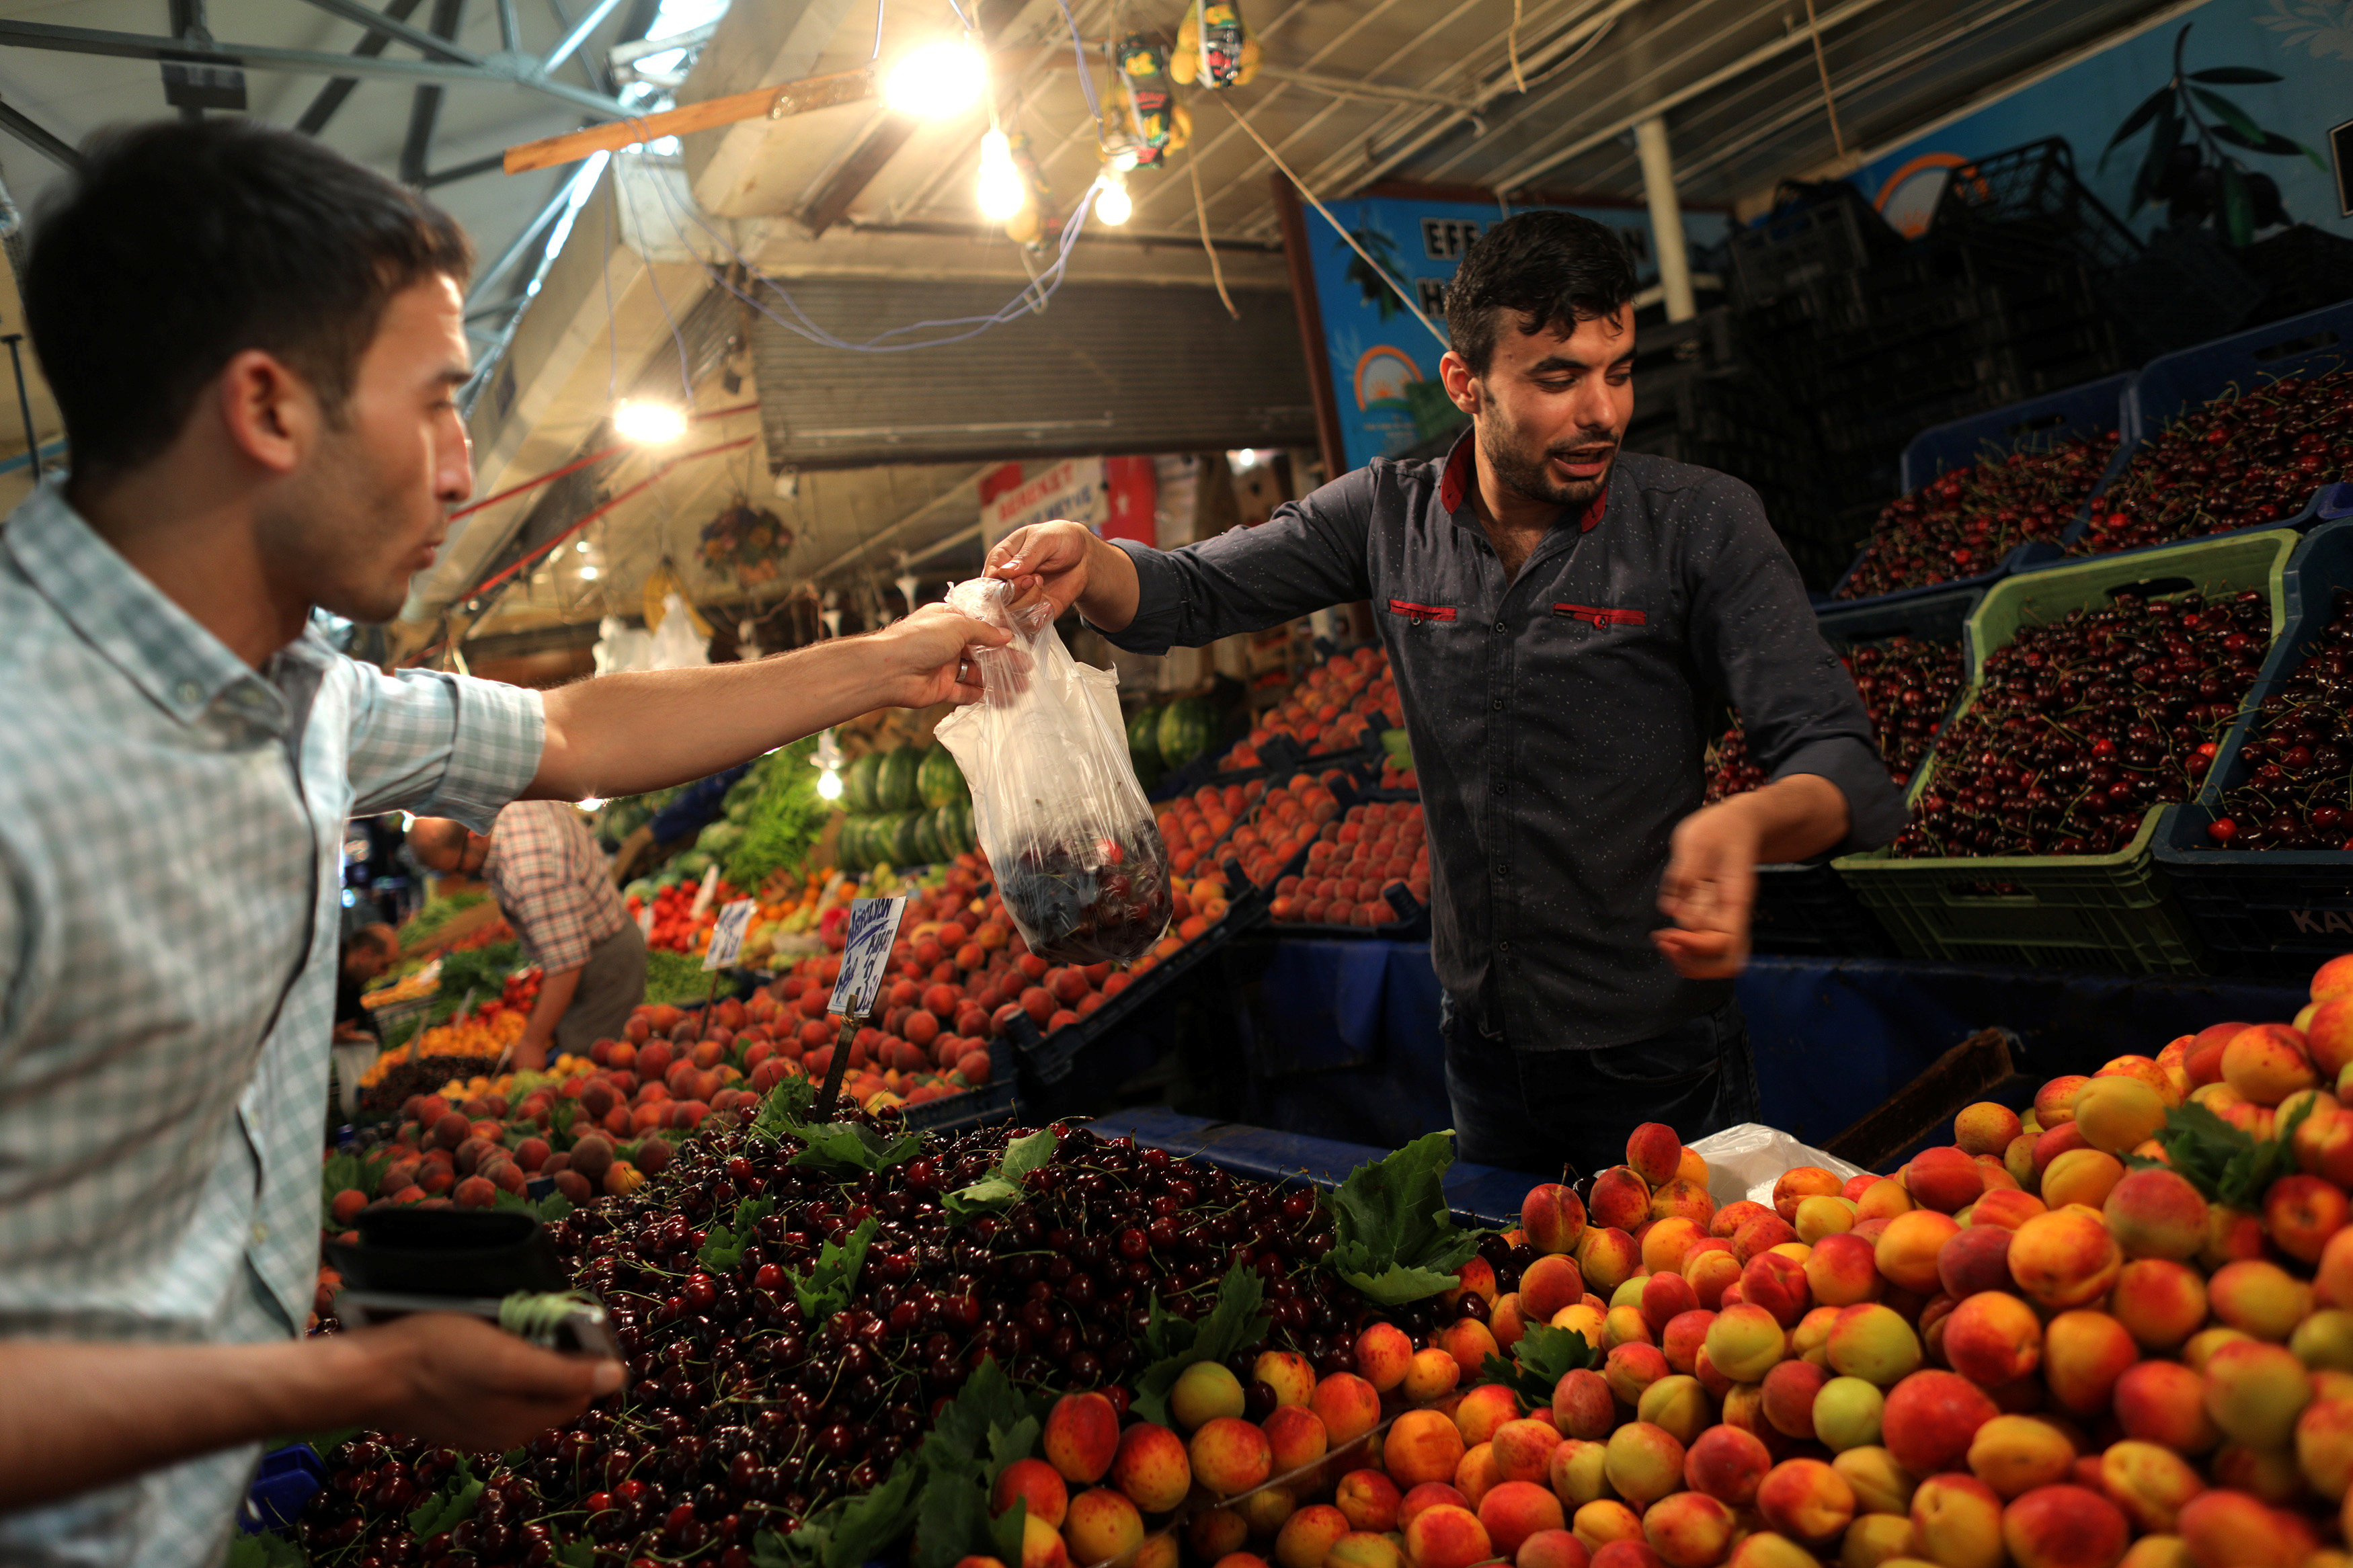 Private sector agrees for 10% price cuts in Turkey